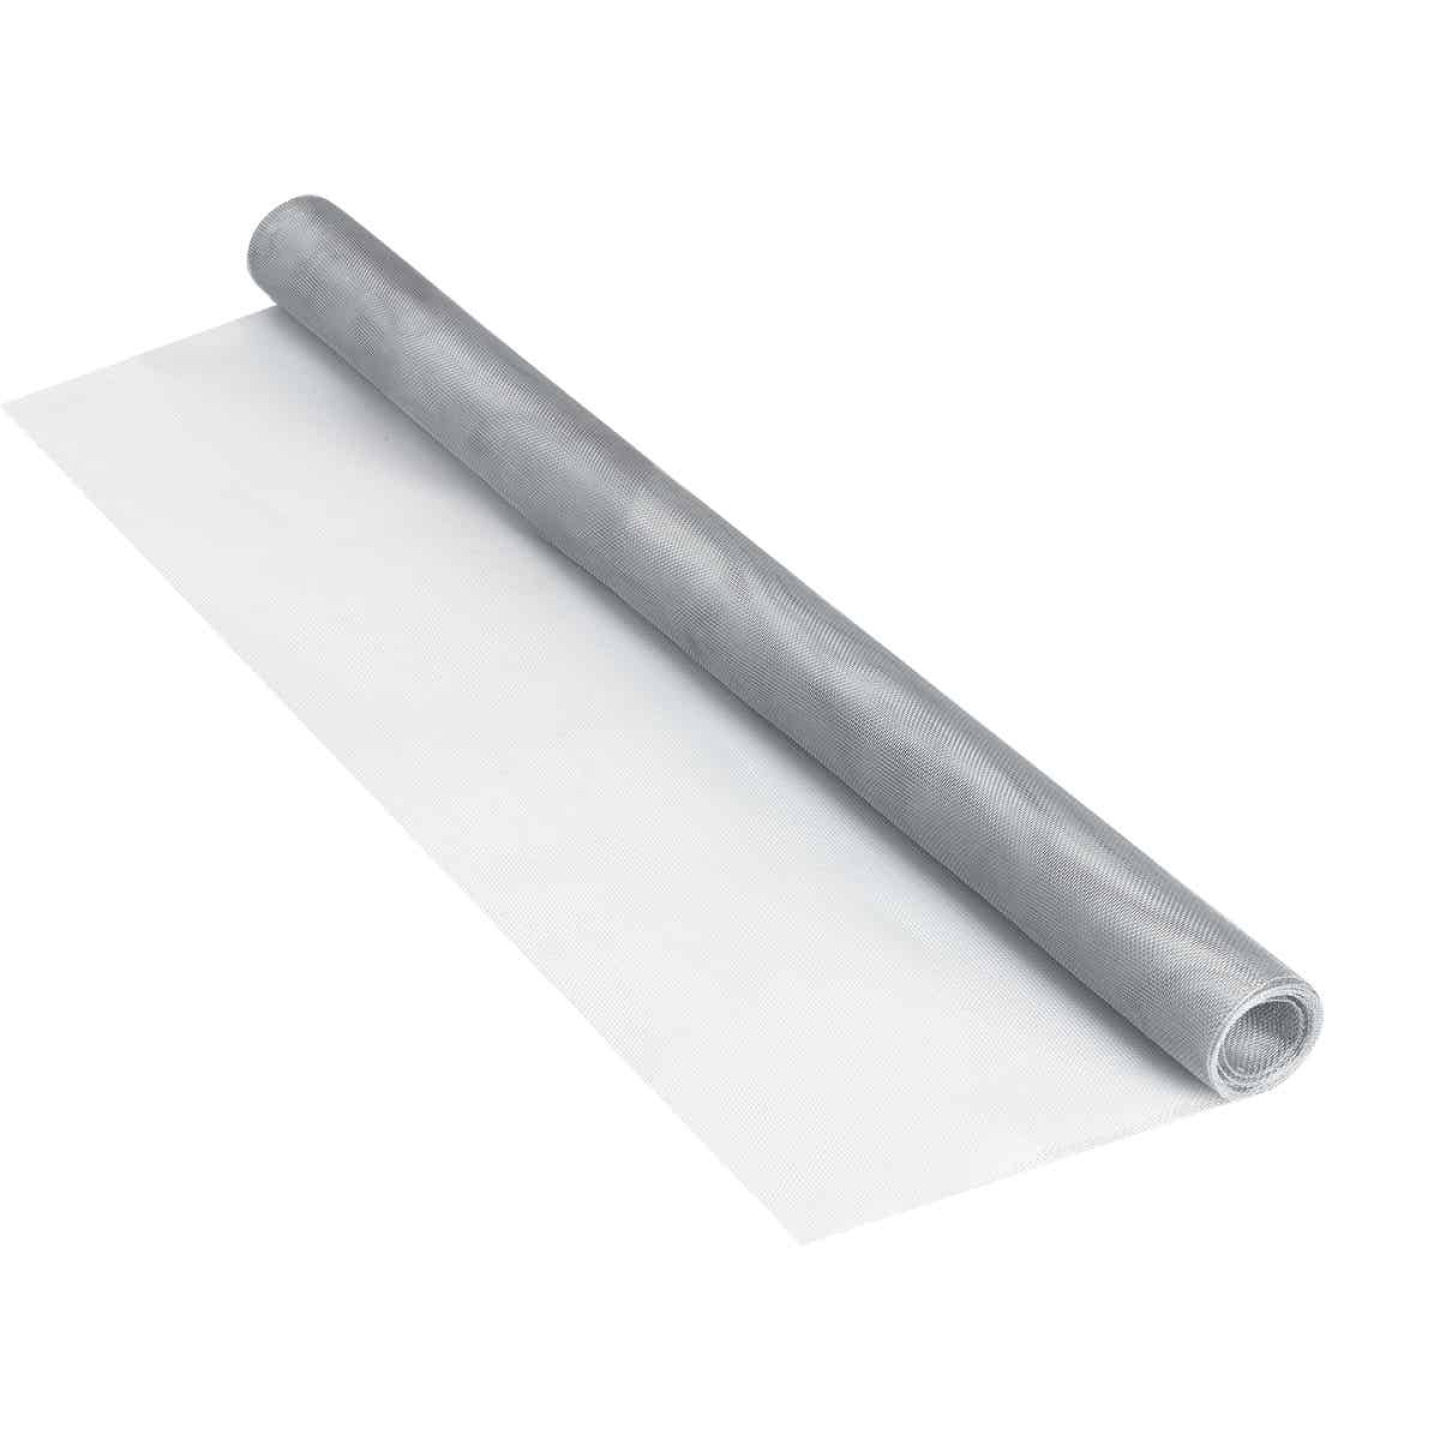 Phifer 24 In. x 84 In. Brite Aluminum Screen Ready Rolls Image 3